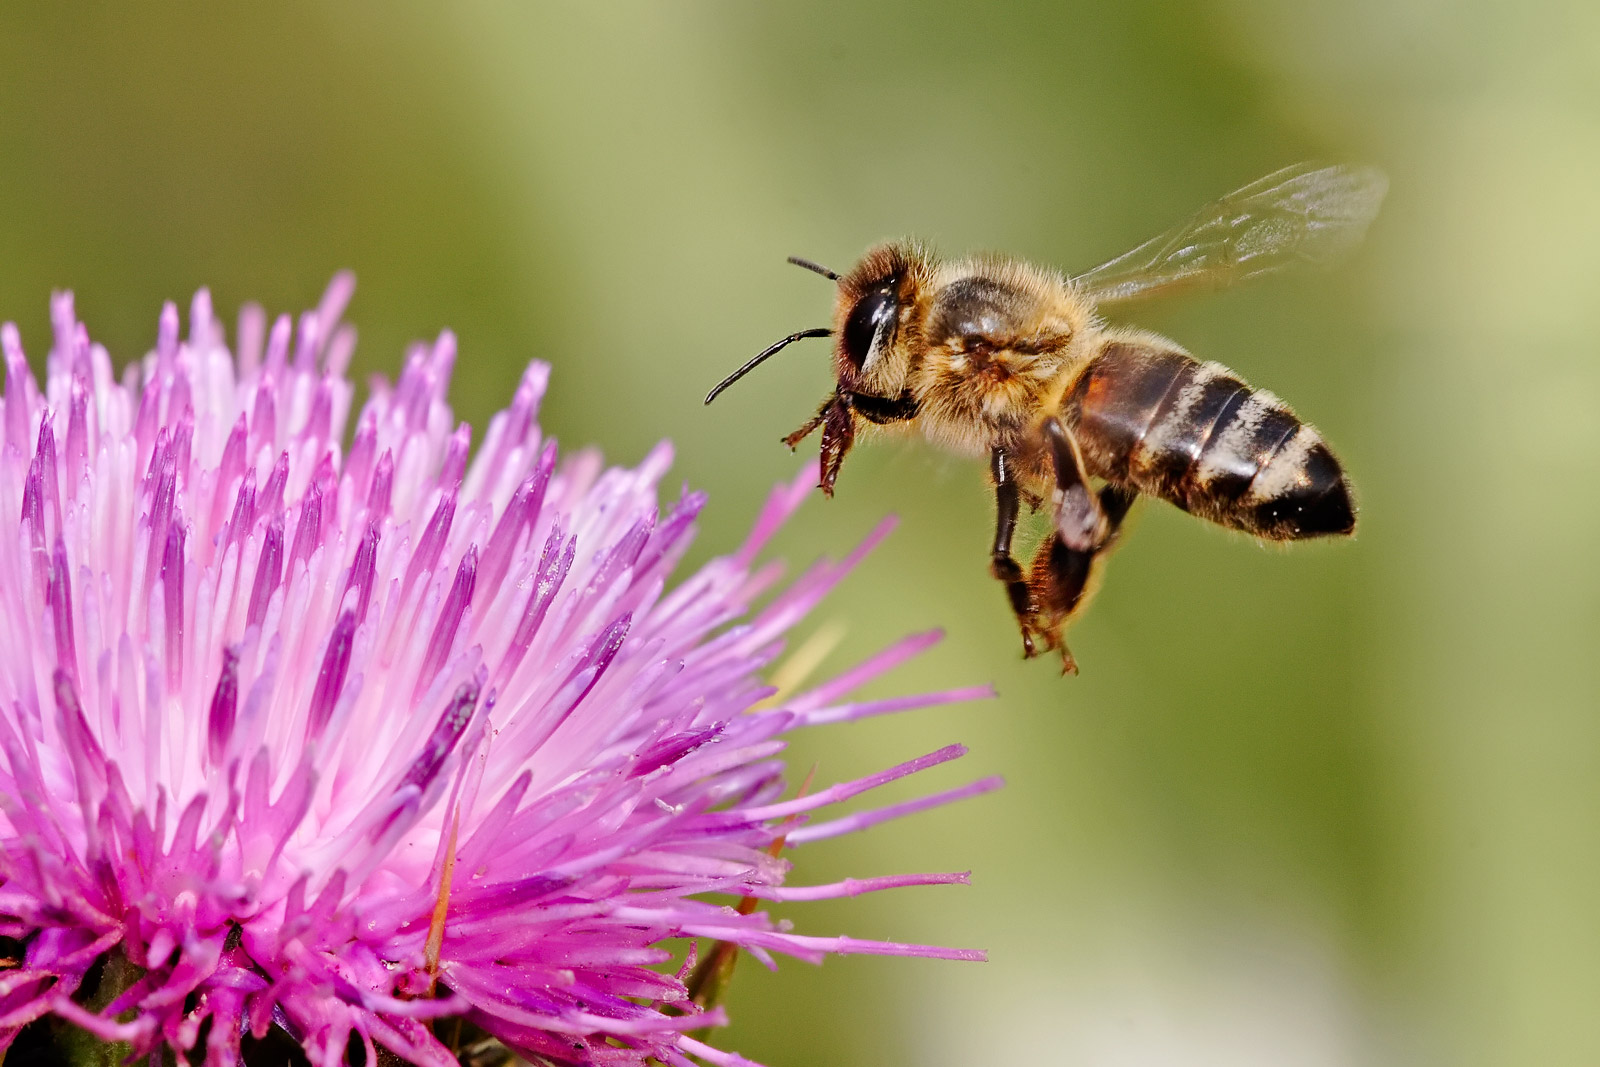 Best Collection Of Honey Bees Wallpapers For Android Top